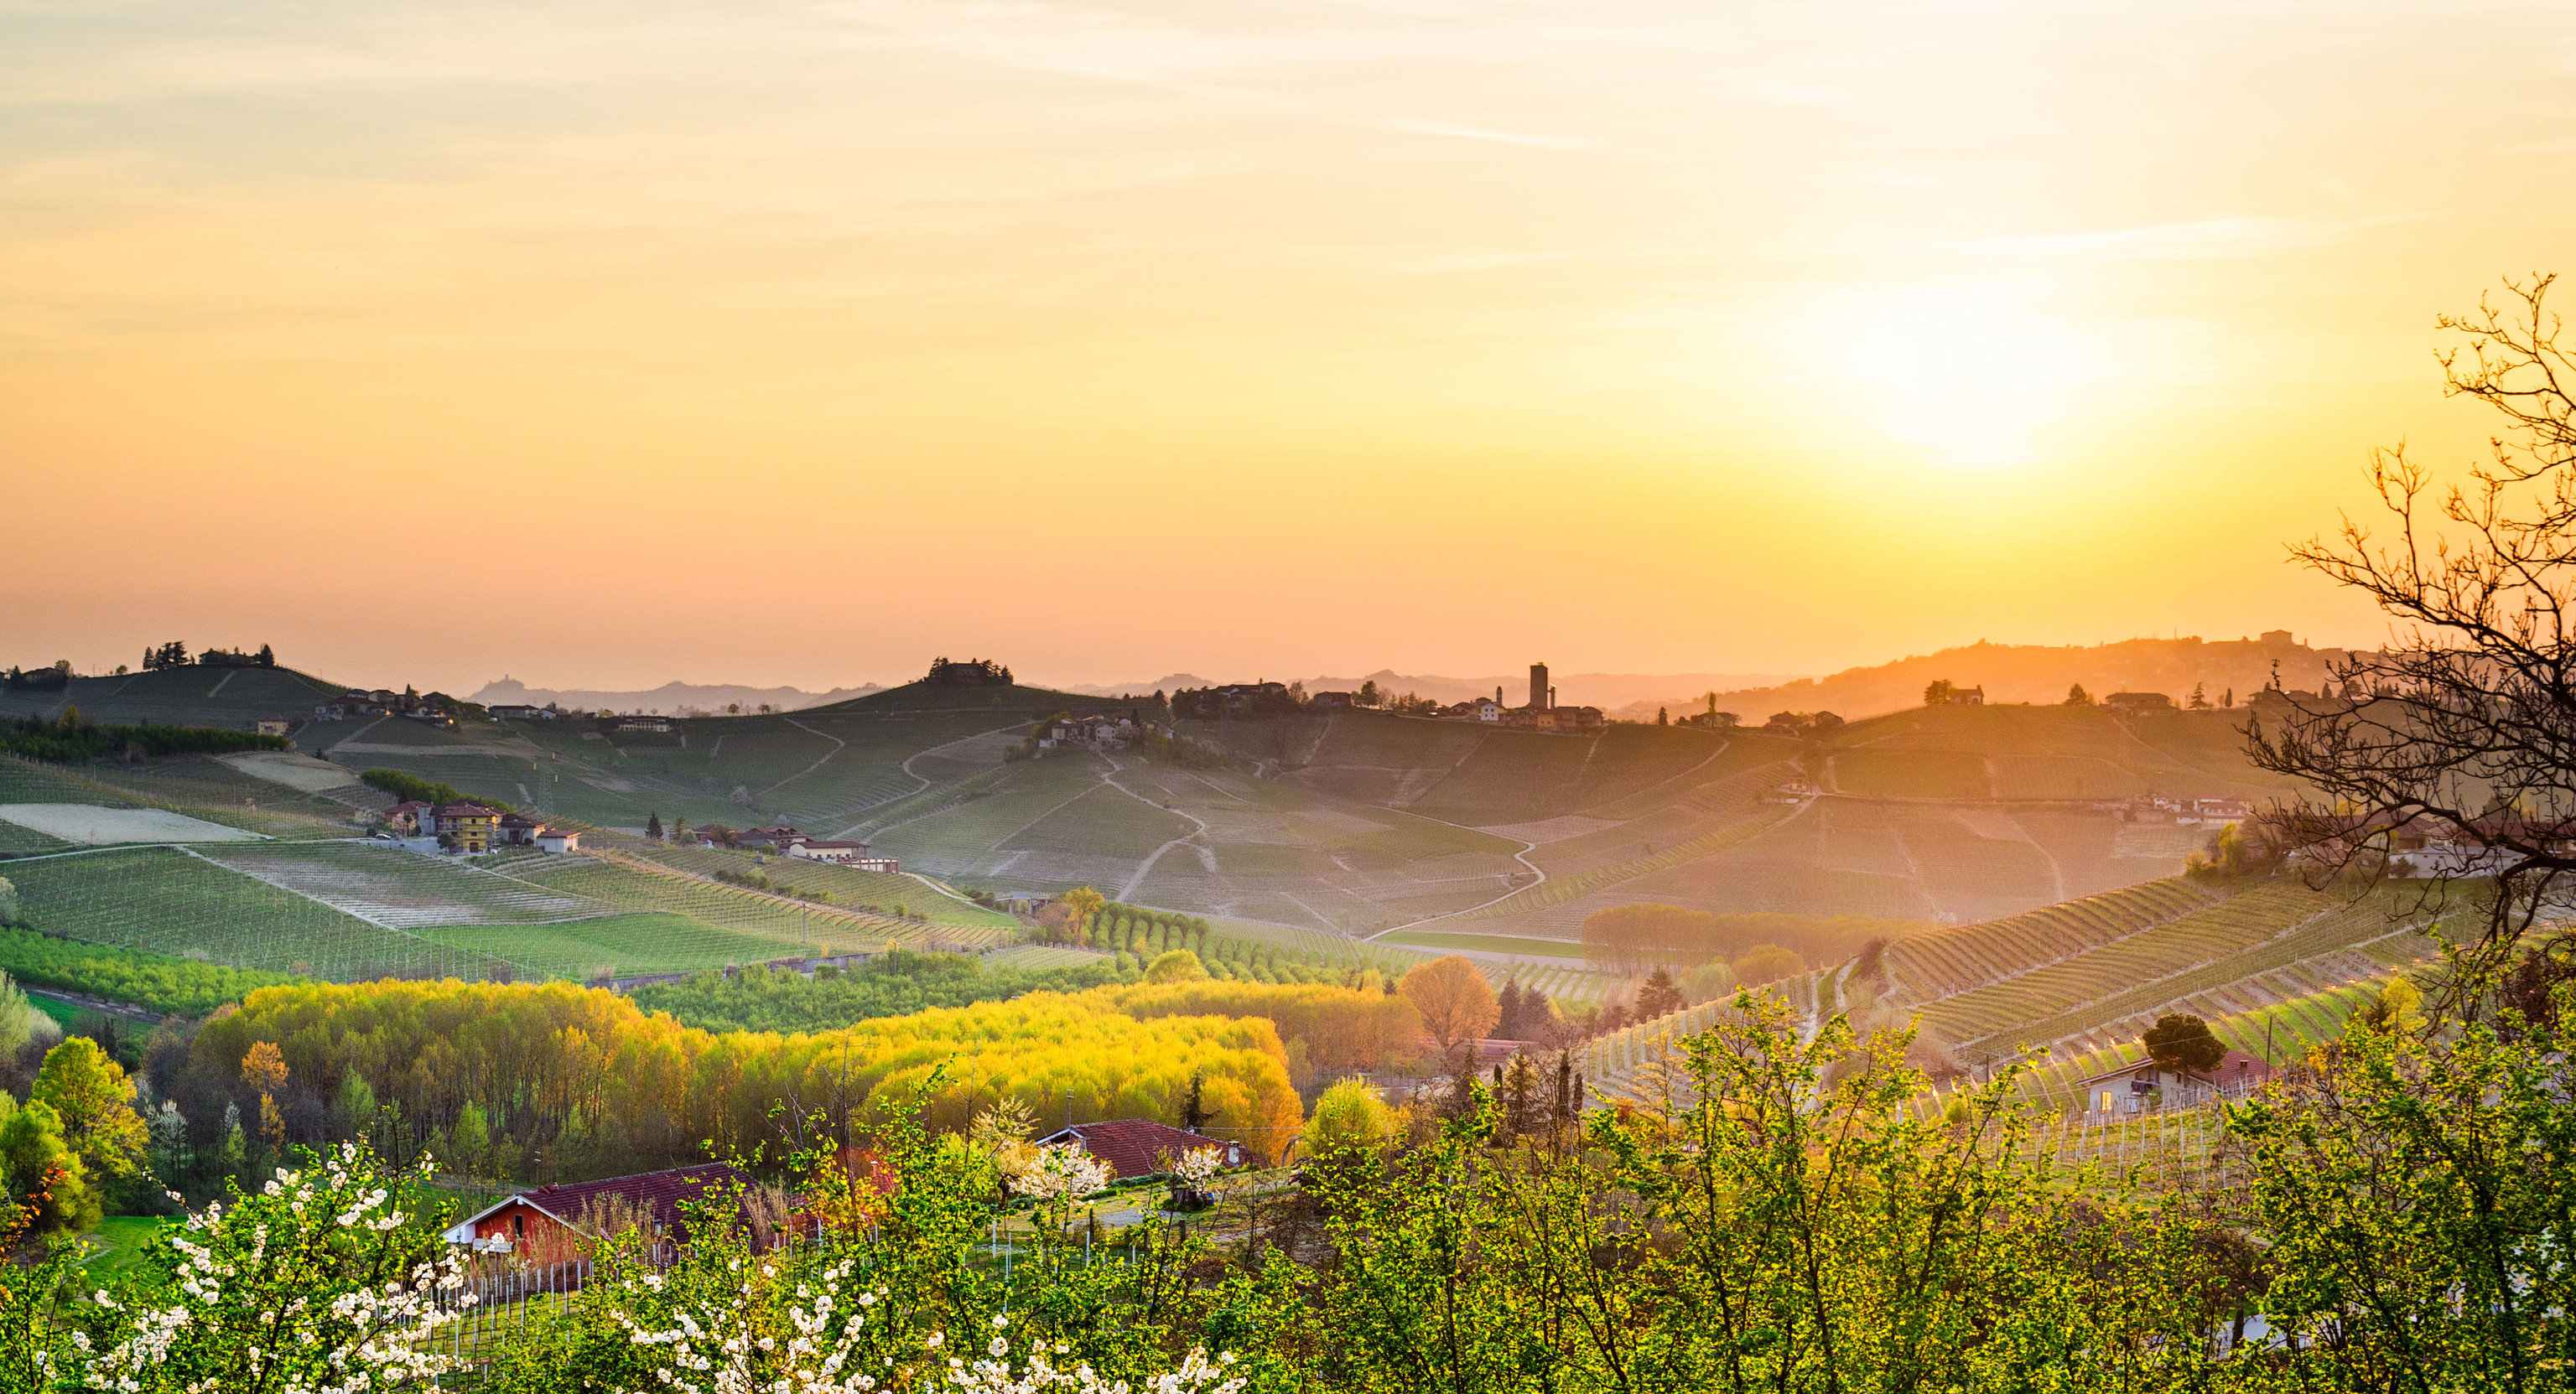 Food + Drink Hotels Italy Luxury Travel Trip Ideas sky outdoor grass Nature field morning dawn hill sunlight rural area landscape evening tree hill station grassland sunrise agriculture meadow mount scenery plain Sun Farm Sunset setting horizon mountain plant crop pasture lush highland